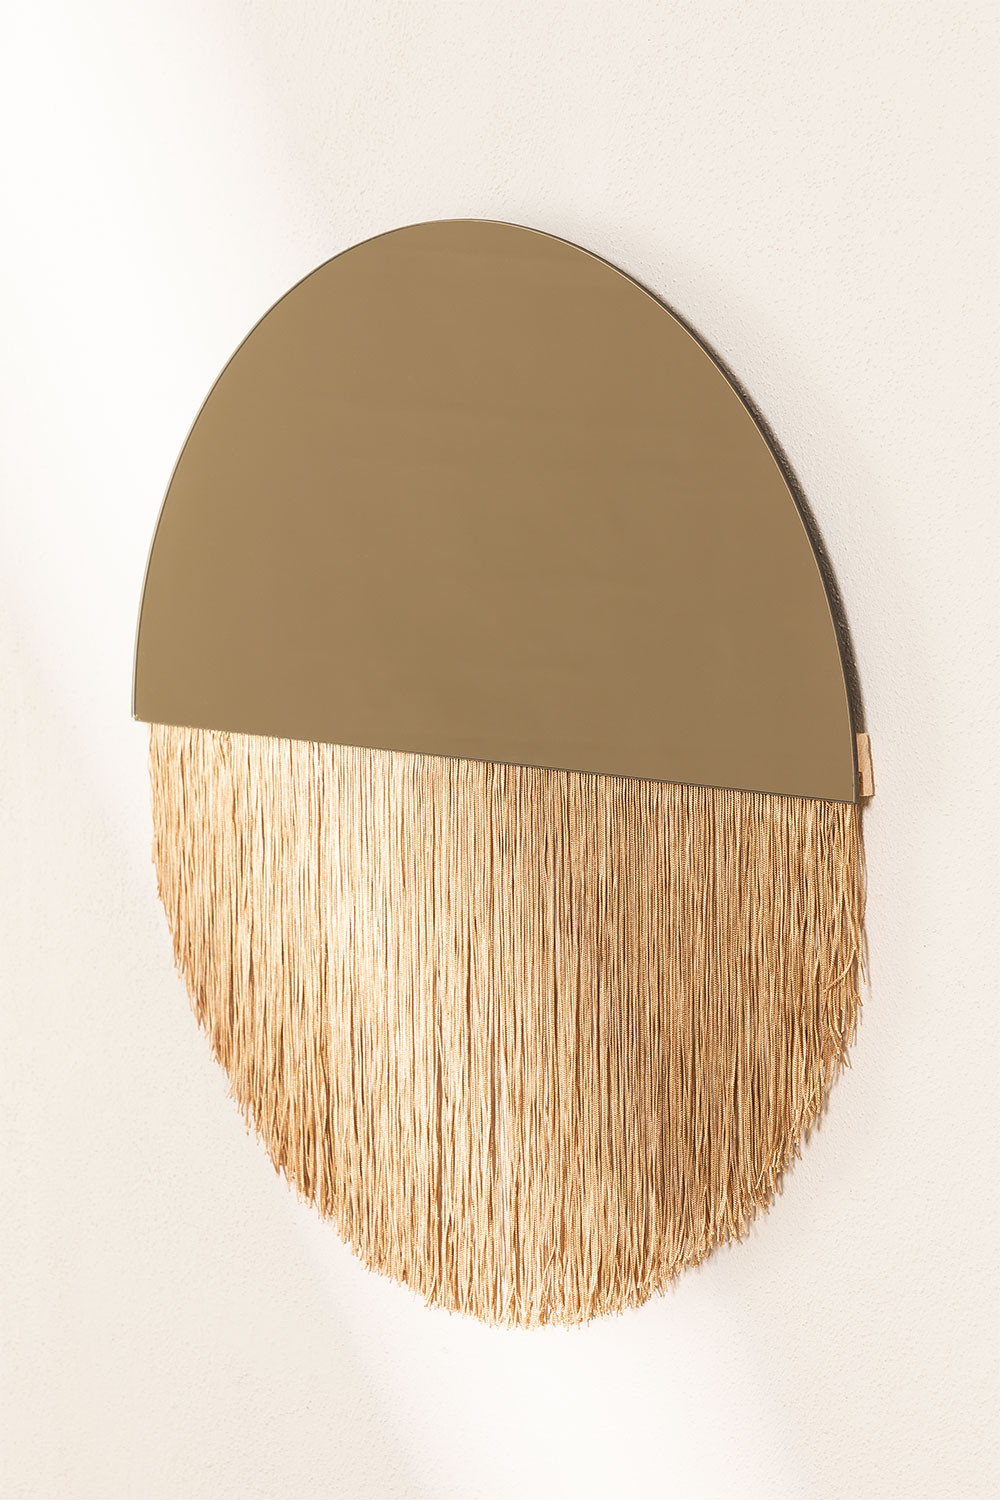 Ilaus Wall Mirror, gallery image 1